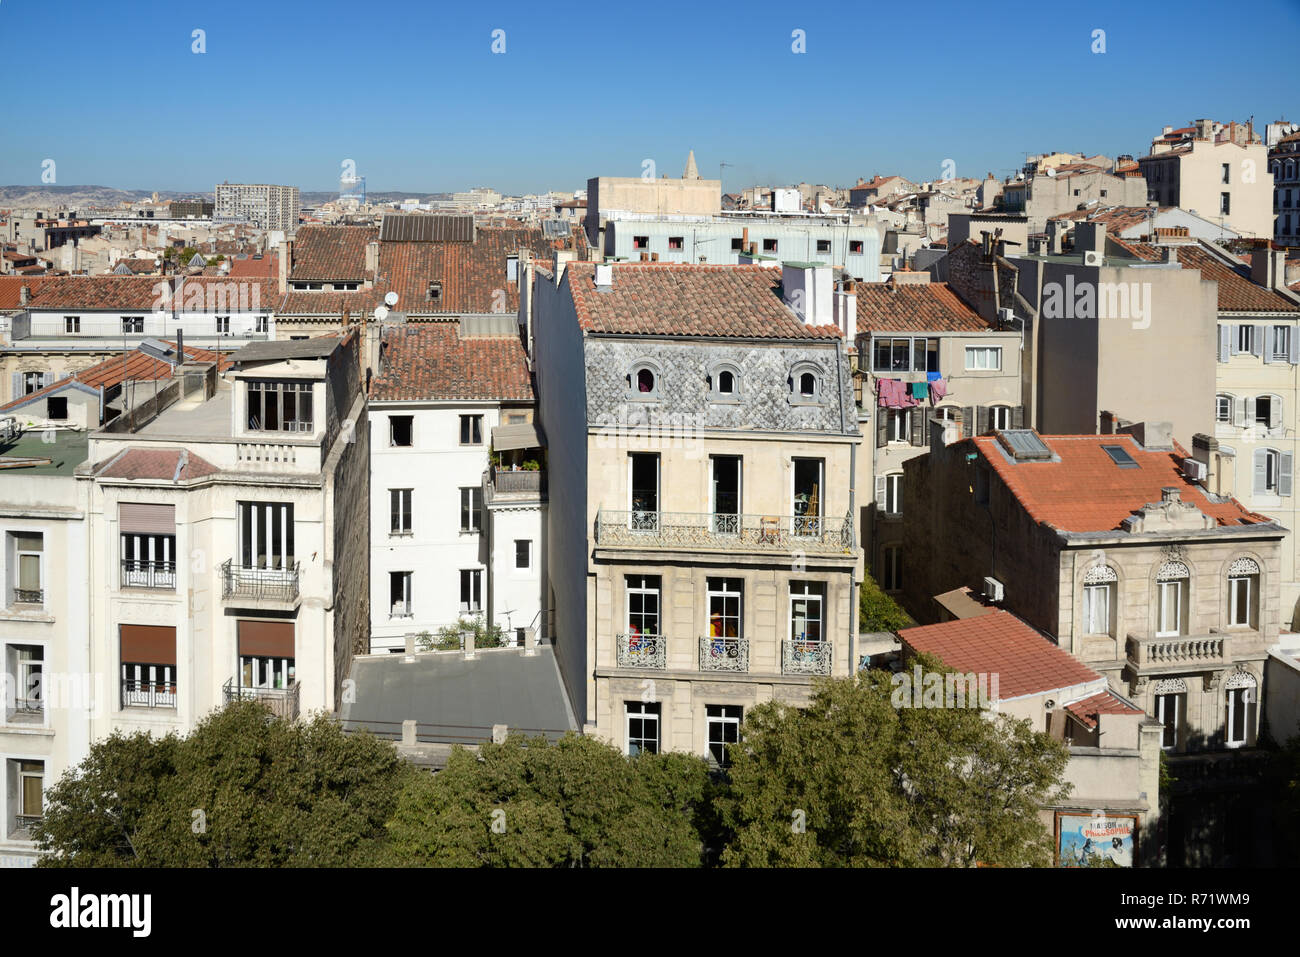 Townscape or Cityscape, Skyline View over the Rooftops of the Historic District of Noailles Marseille Provence France - Stock Image